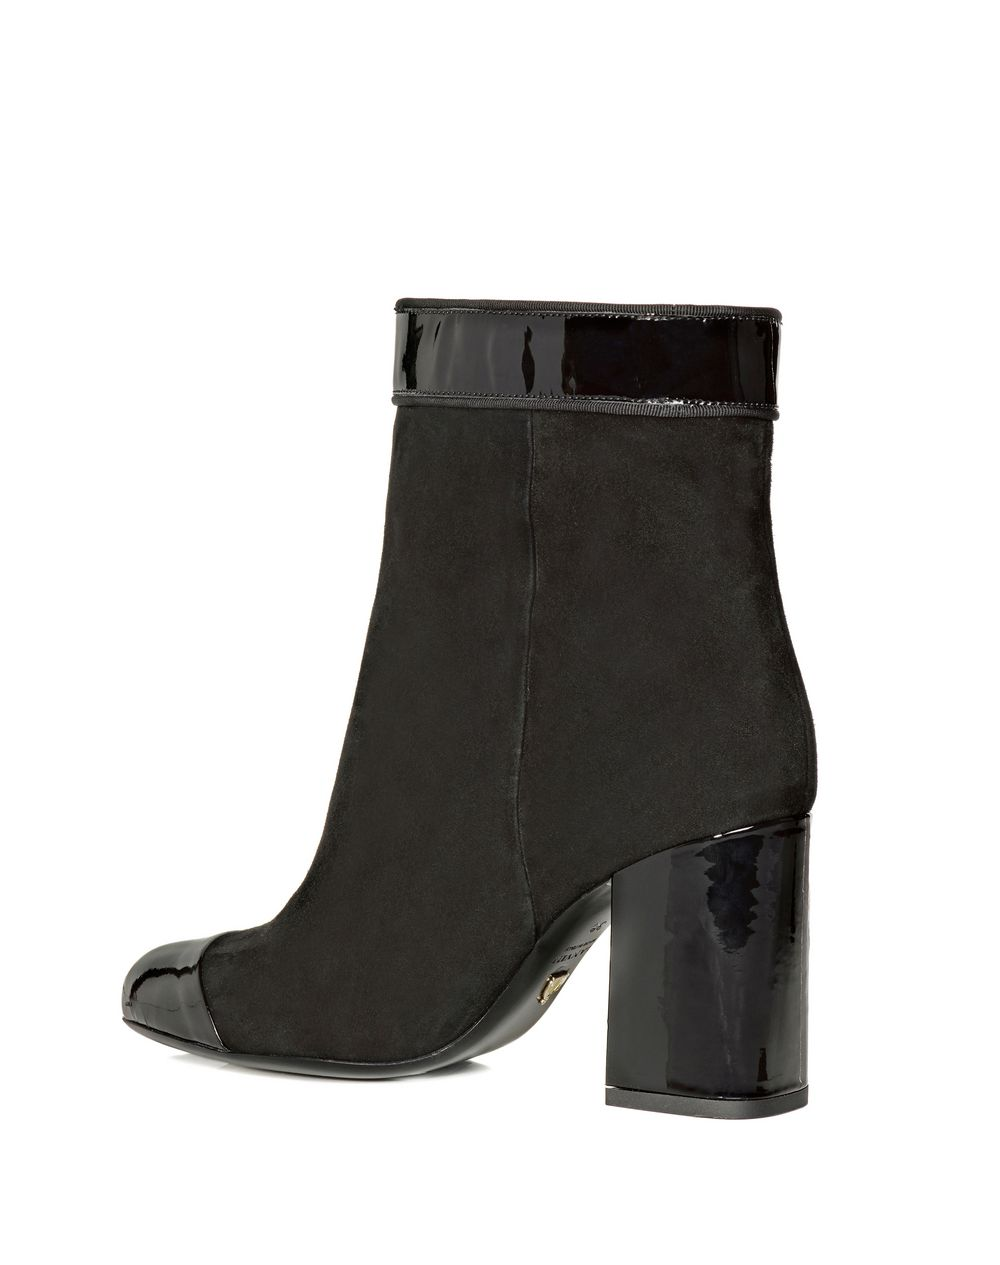 TWO LEATHER HIGH HEEL ANKLE BOOT - Lanvin